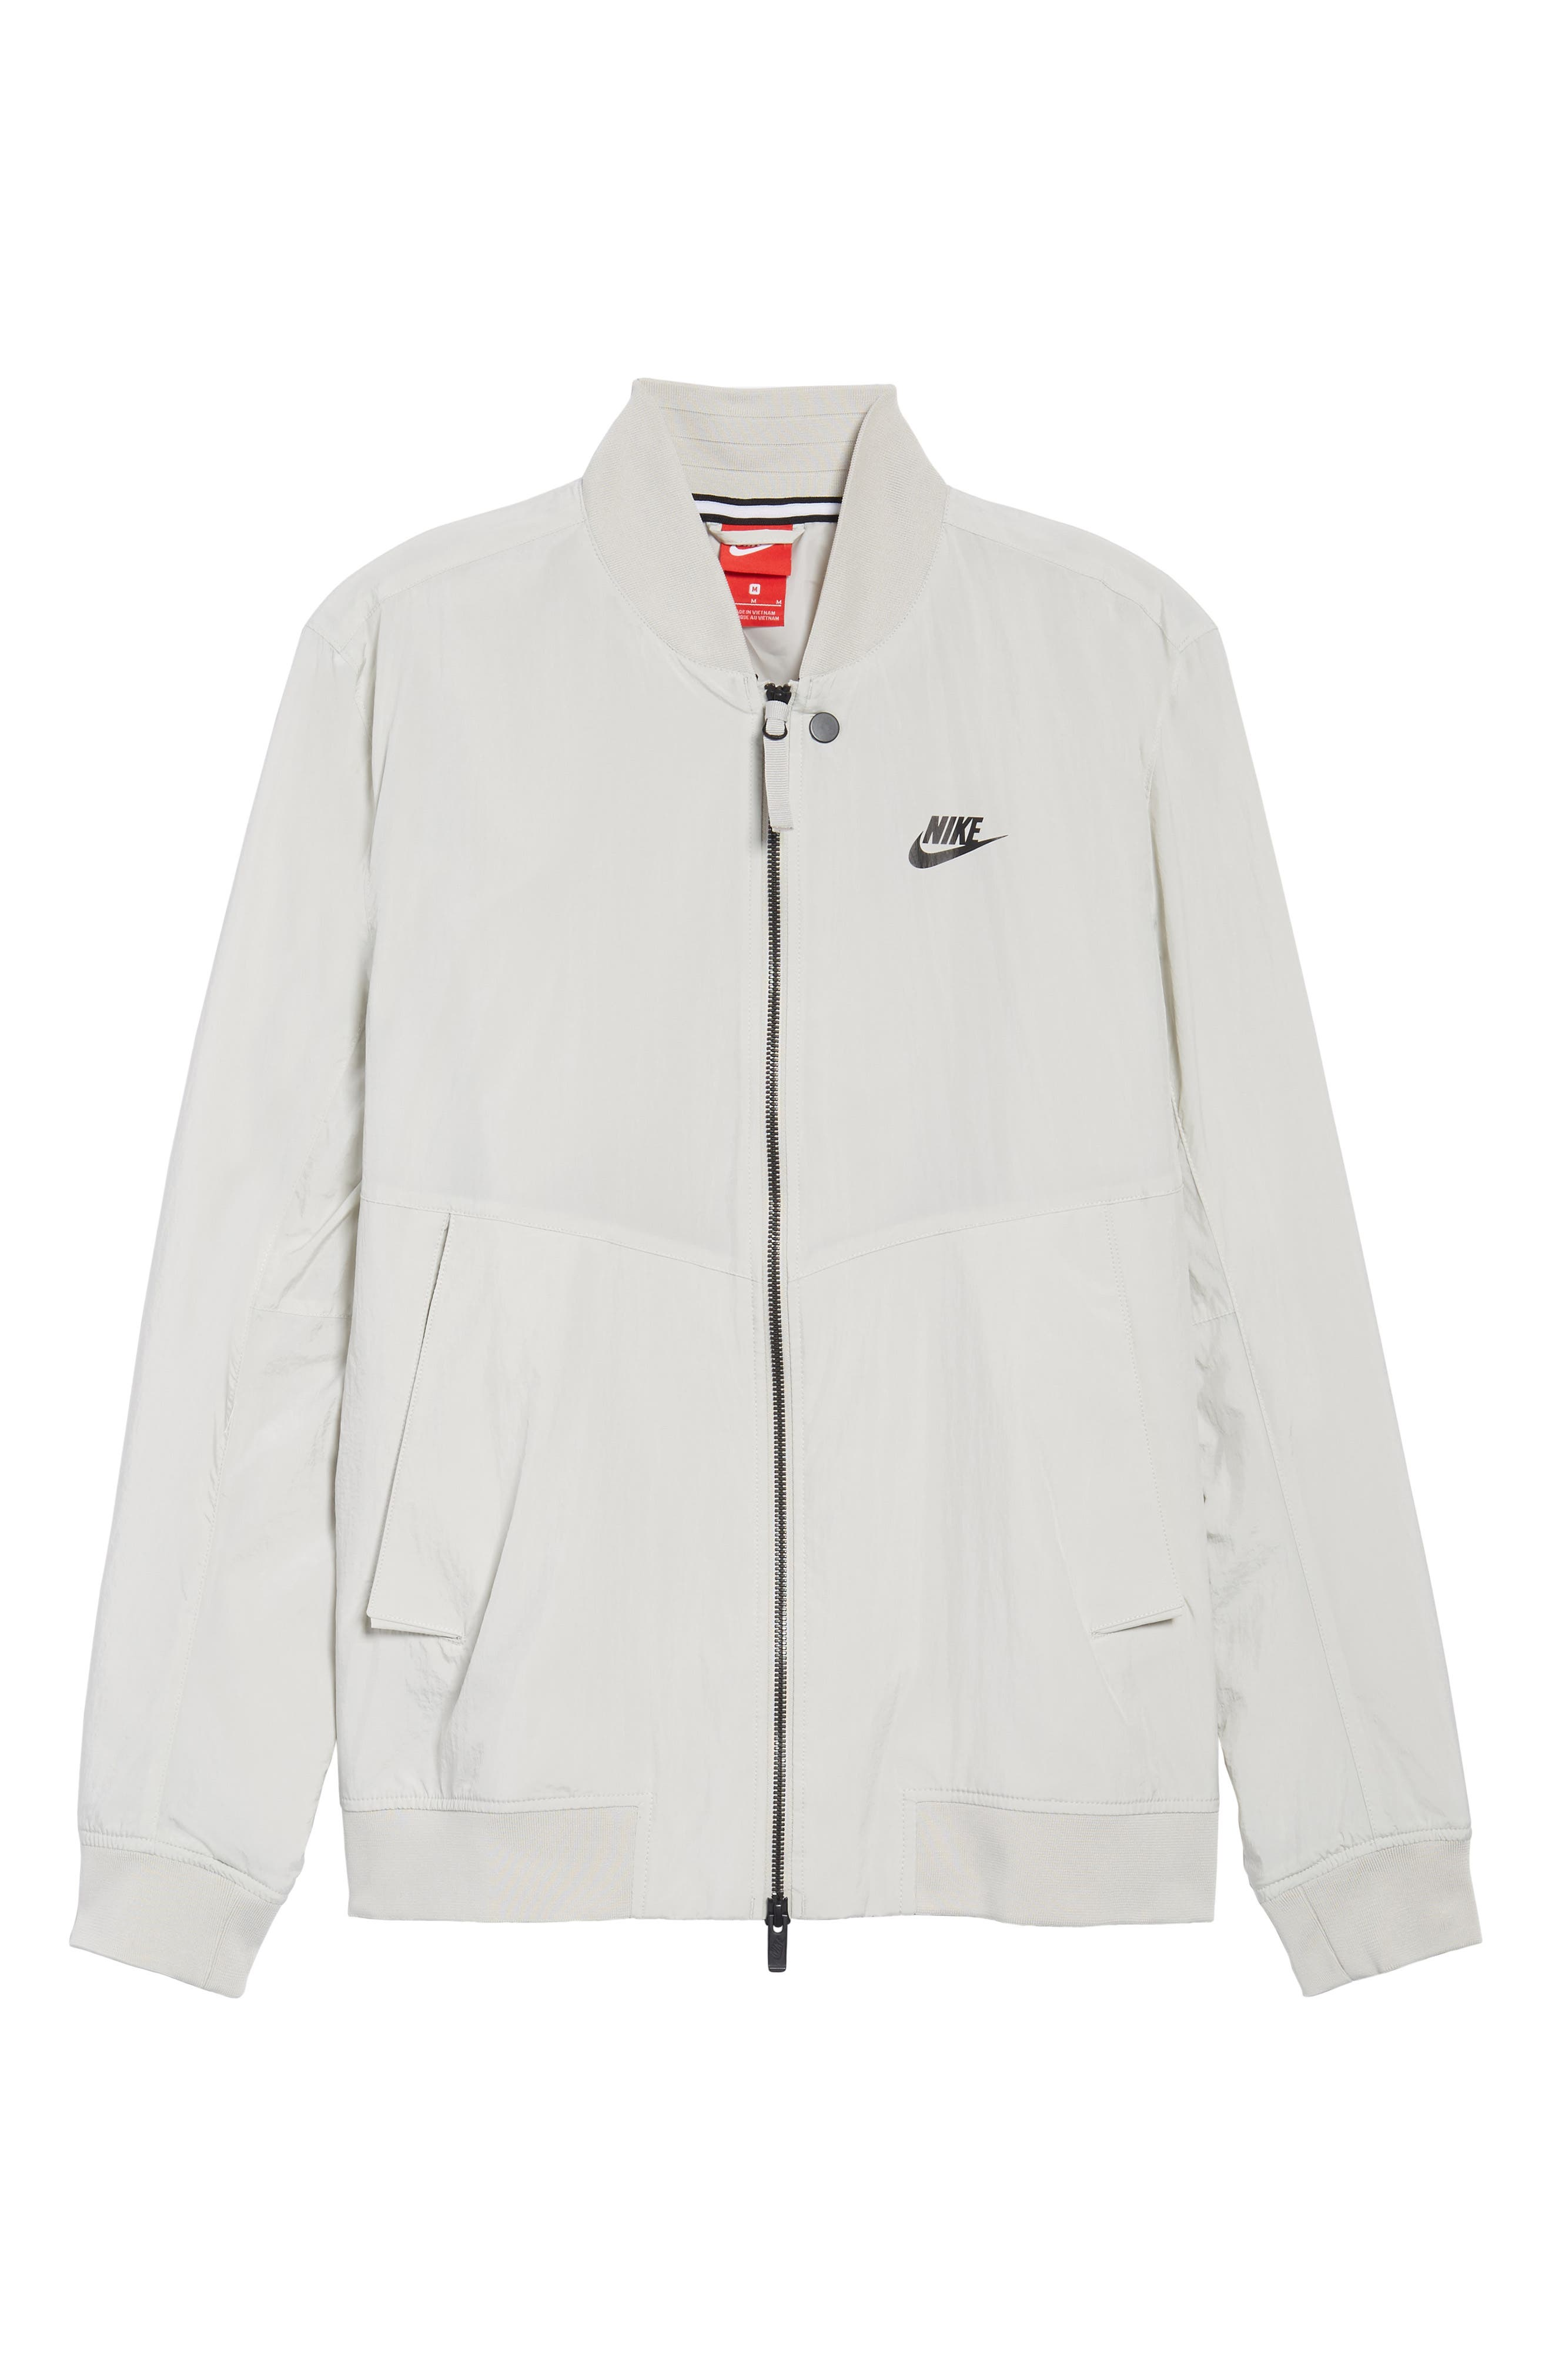 NSW Franchise Varsity Jacket,                             Alternate thumbnail 6, color,                             Light Bone/ Light Bone/ Black